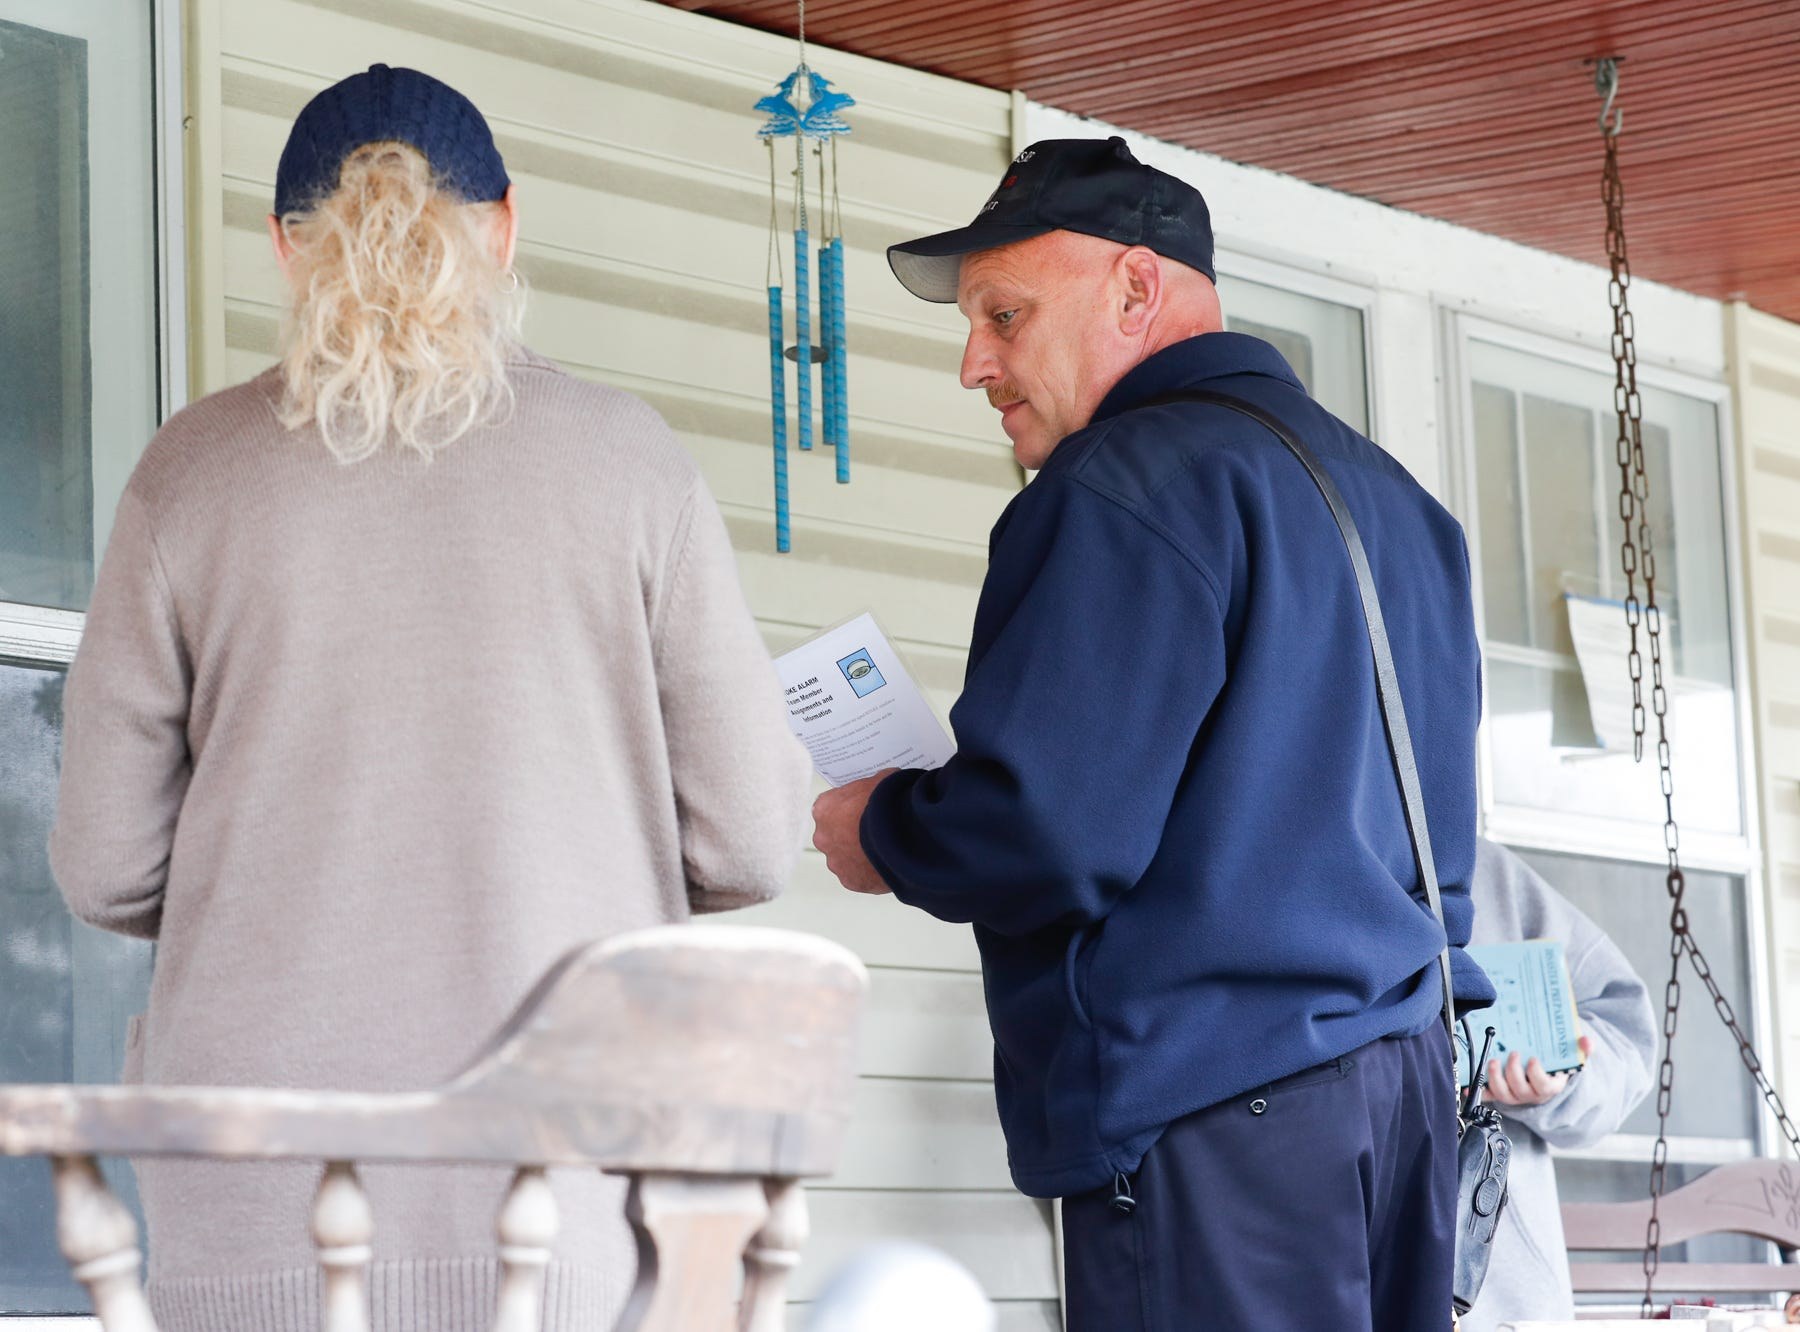 Volunteer Lana Stevens, left, with the Citizens Alliance for Public Safety,  and Firefighter Paul Lambert , center, speak to a citizen about fire prevention as they go door to door delivering safety materials including smoke alarms during IFD's home safety blitz in Indianapolis for National Fire Prevention Week, on Friday, October 12, 2018. IFD chose the area around IFD Station 15 which experienced 9 residential fires in 2018 for the blitz.